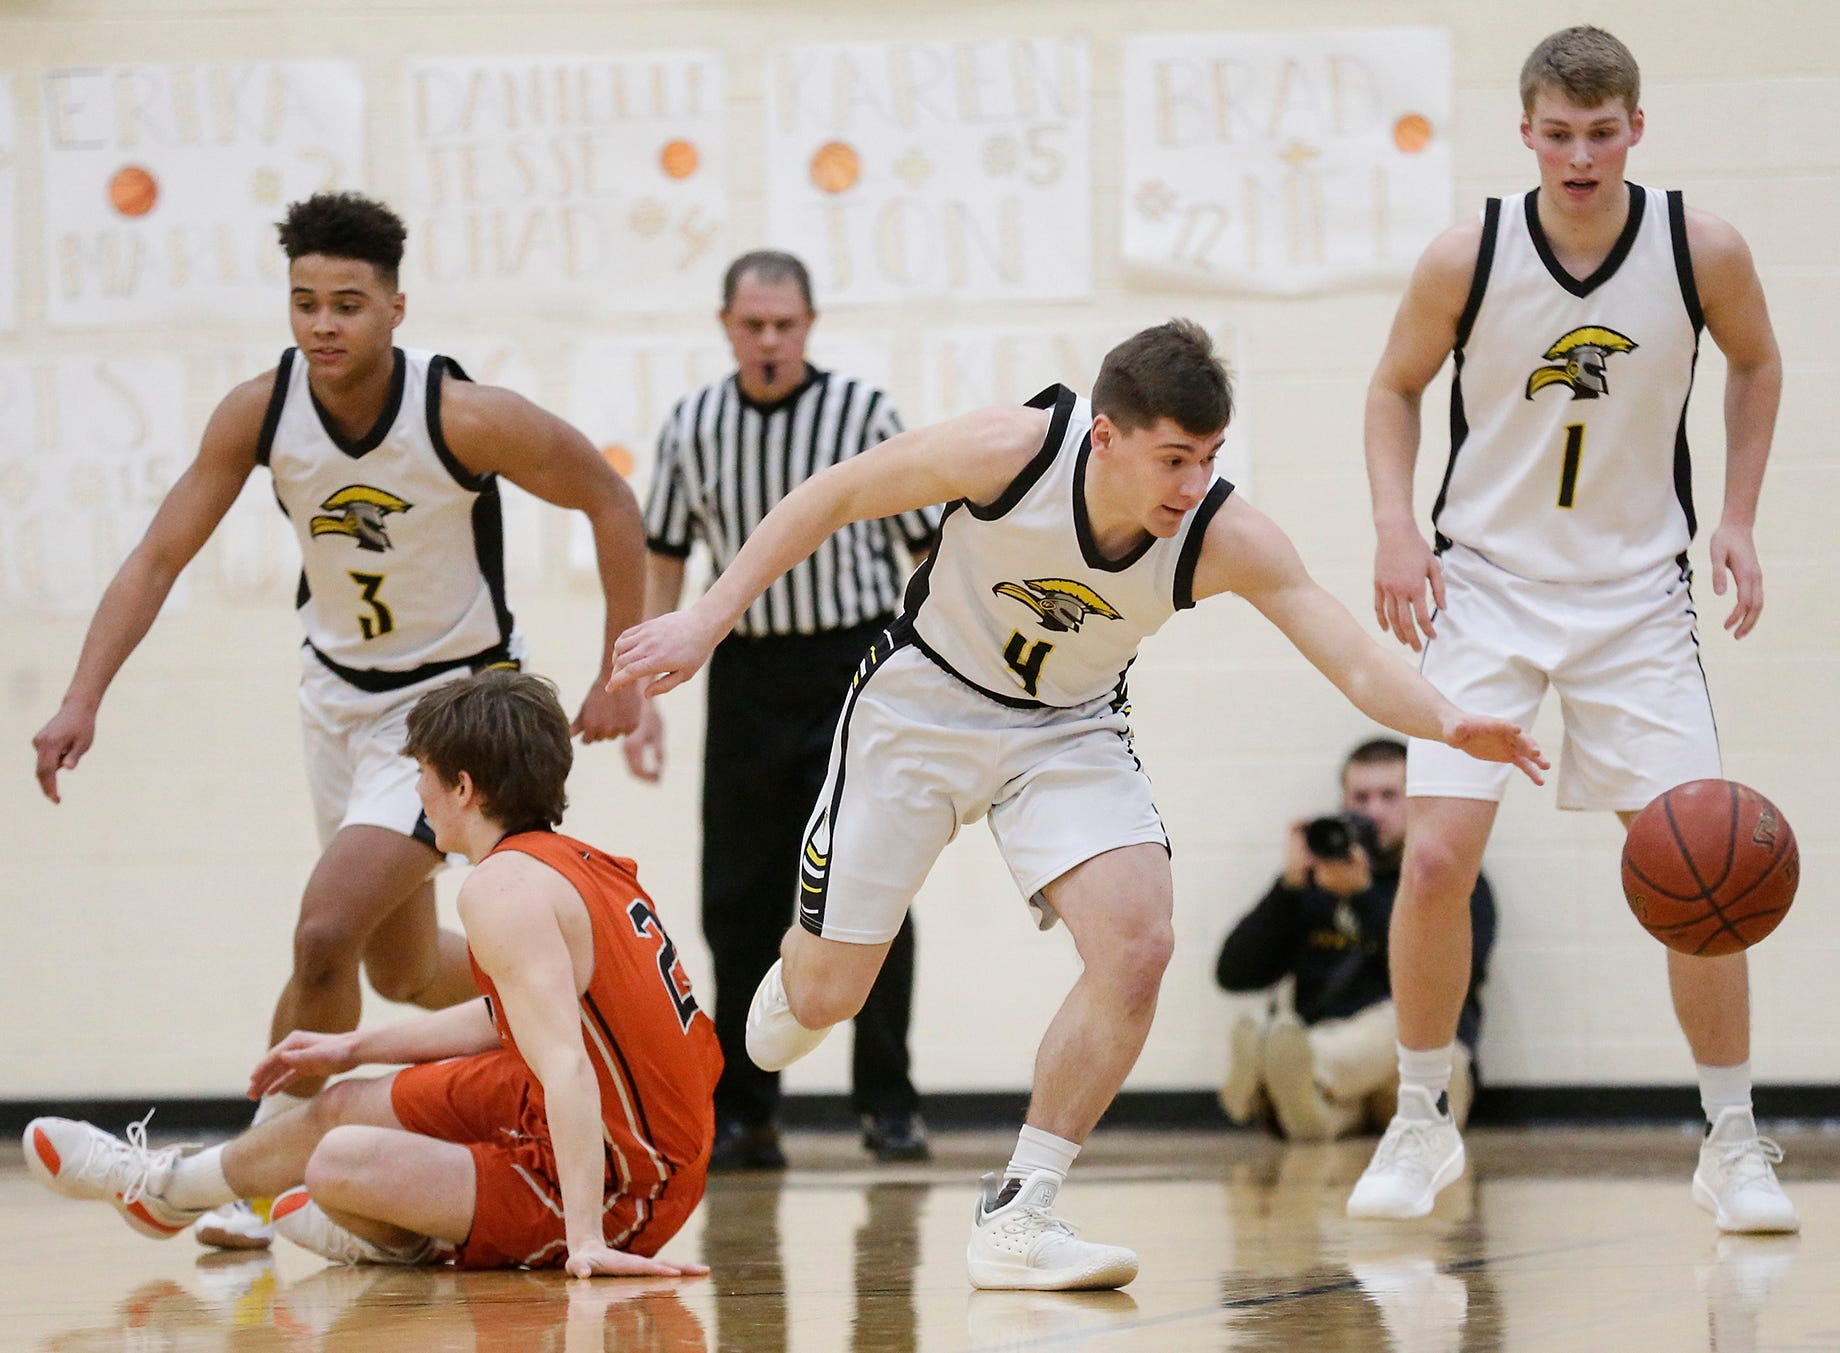 Waupun High School boys basketball's Benet Veleke (4) goes after a loose ball against Plymouth High School during their game Friday, February 15, 2019 in Waupun. Doug Raflik/USA TODAY NETWORK-Wisconsin